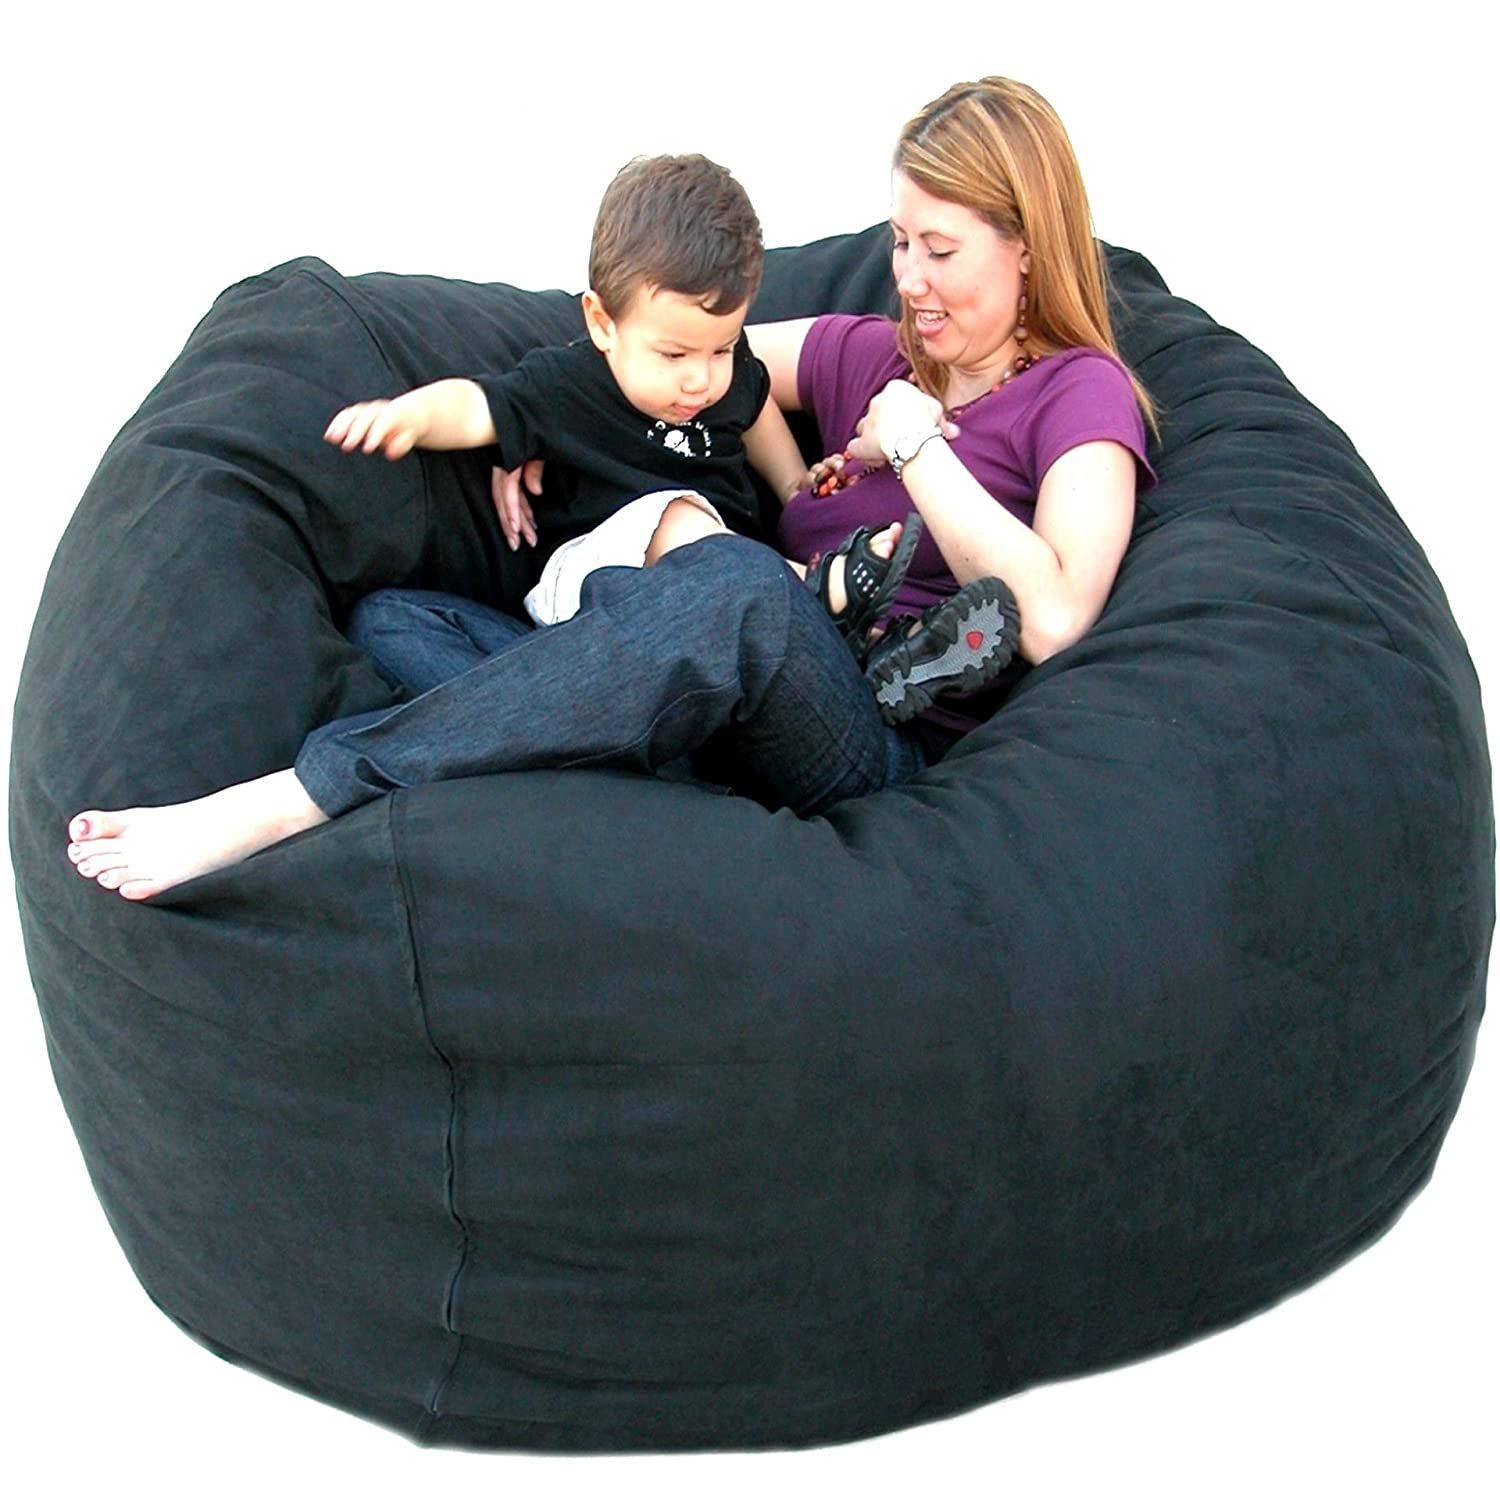 Exceptionnel Amazon.com: Cozy Sack 5 Feet Bean Bag Chair, Large, Black: Kitchen U0026 Dining